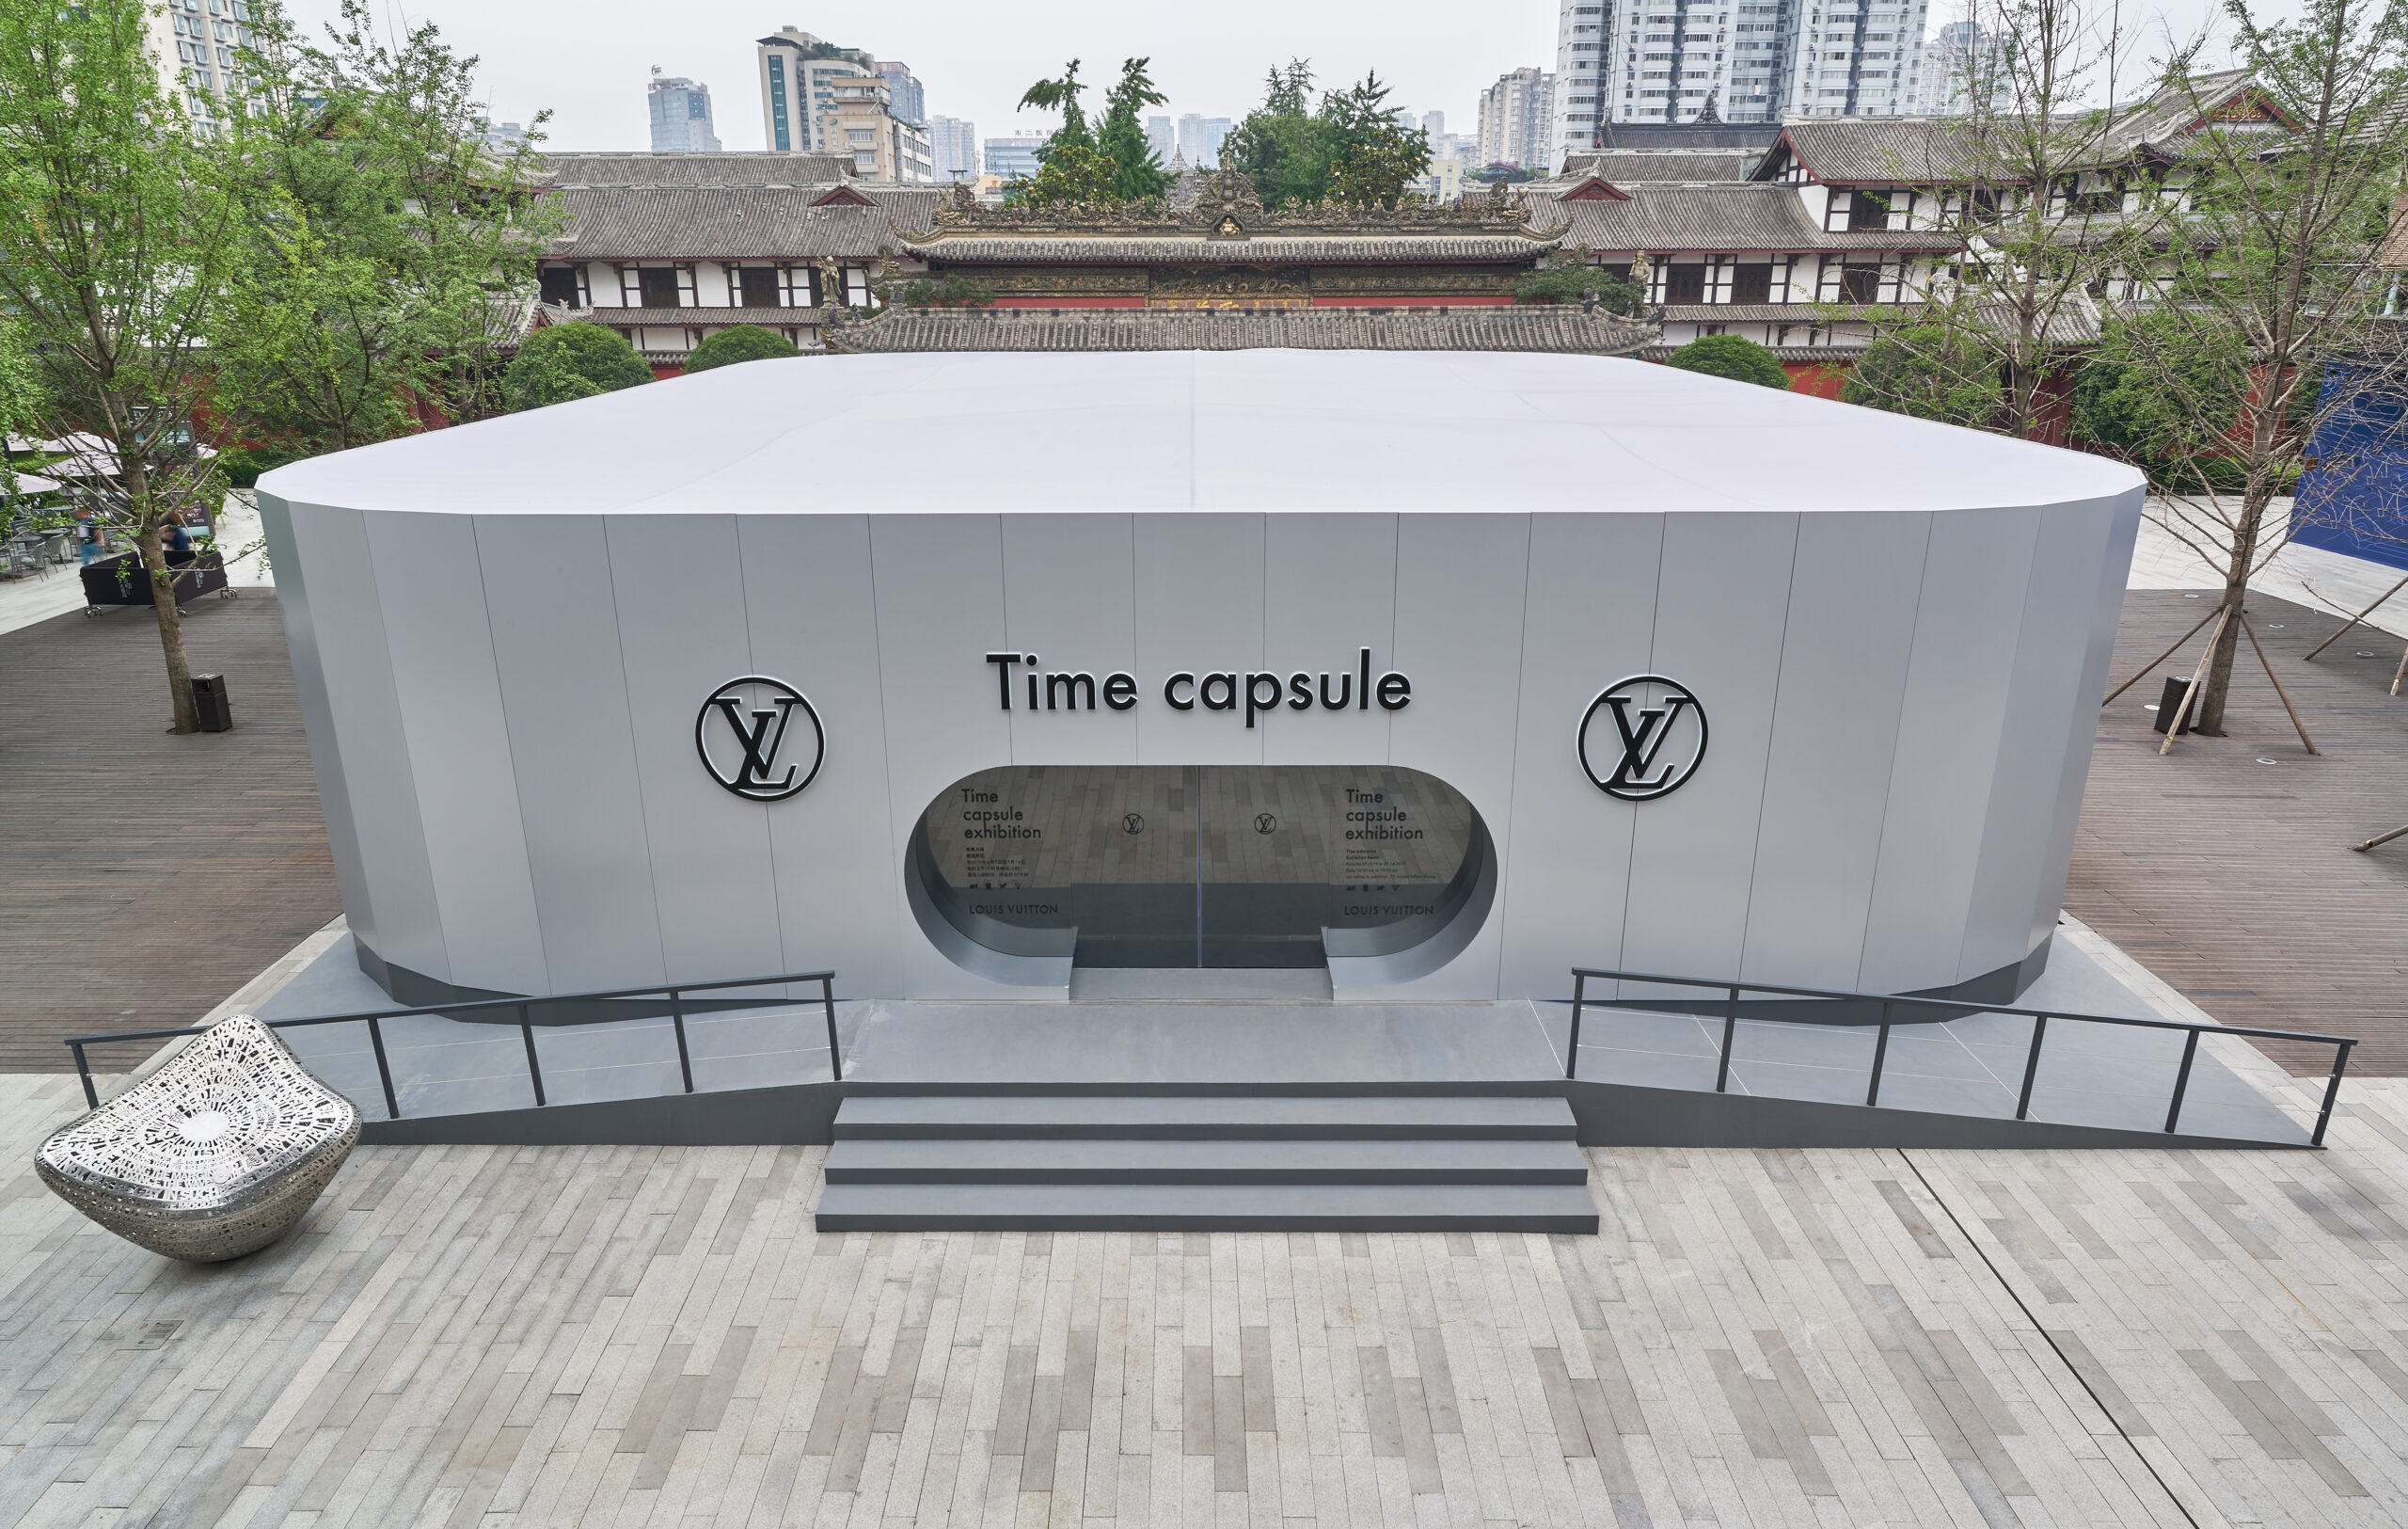 Louis Vuitton Time Capsule Exhibition